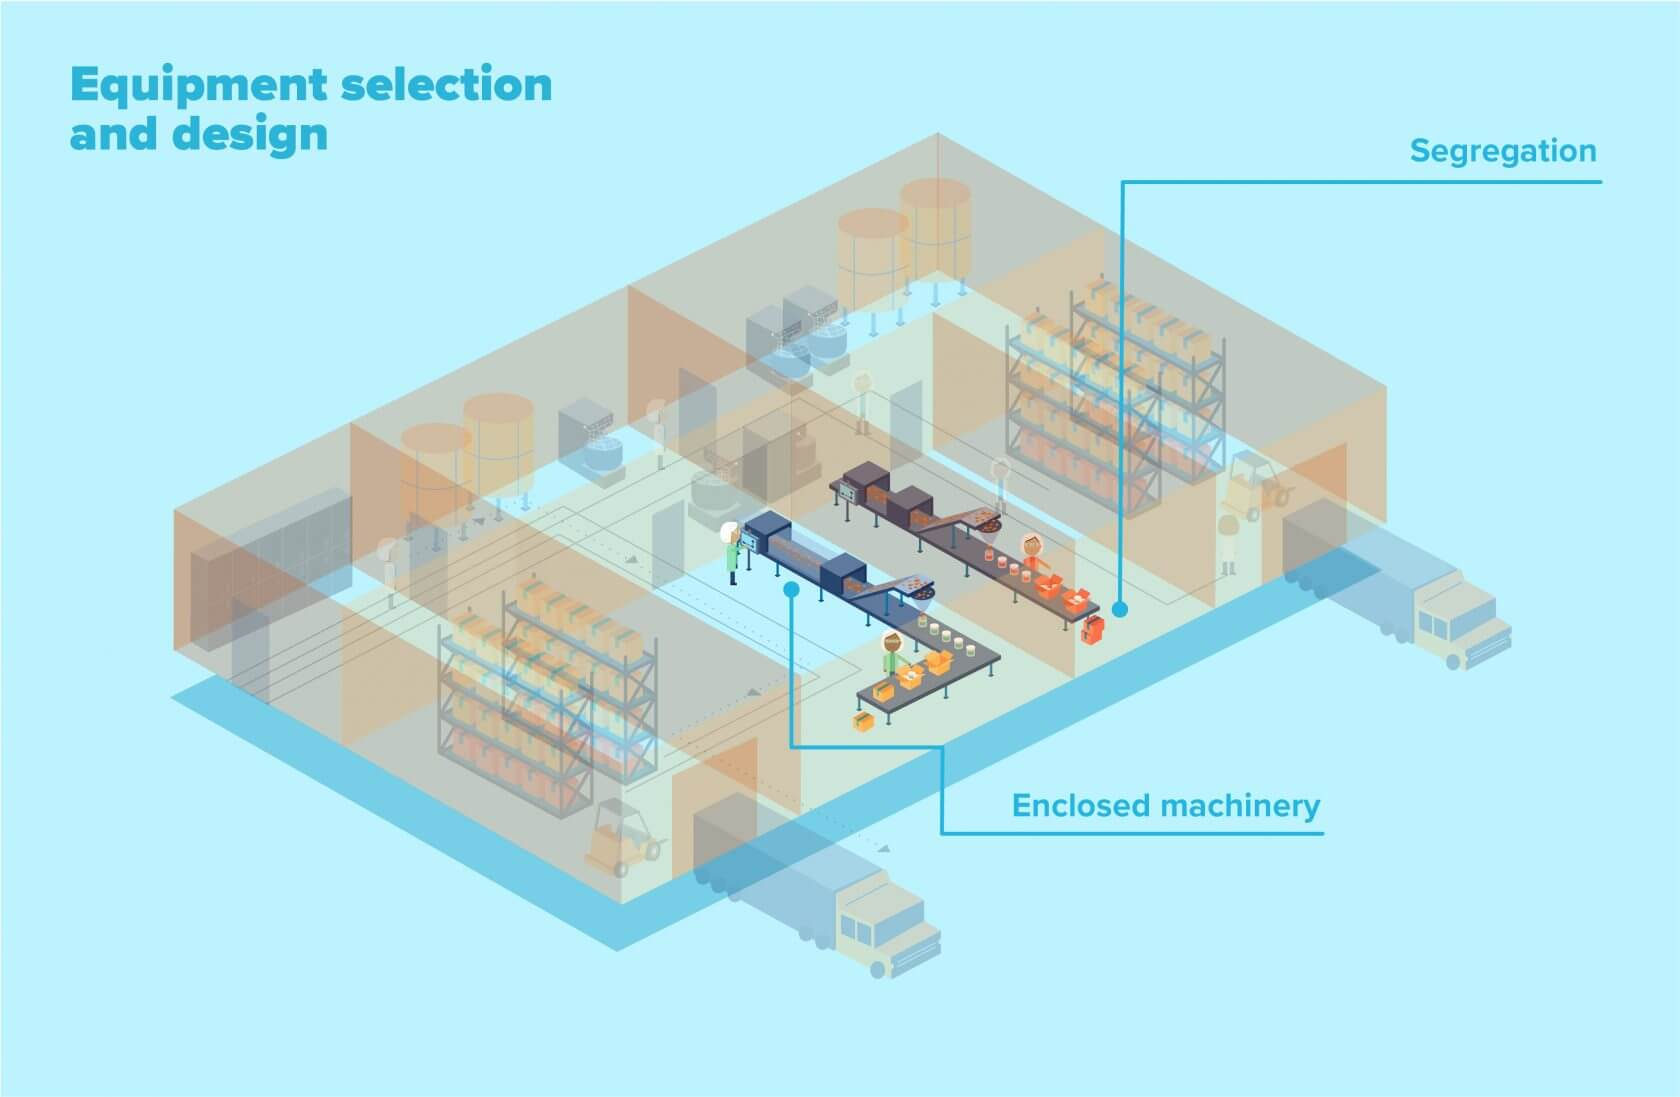 Equipment selection and design as part of allergen control in food manufacturing